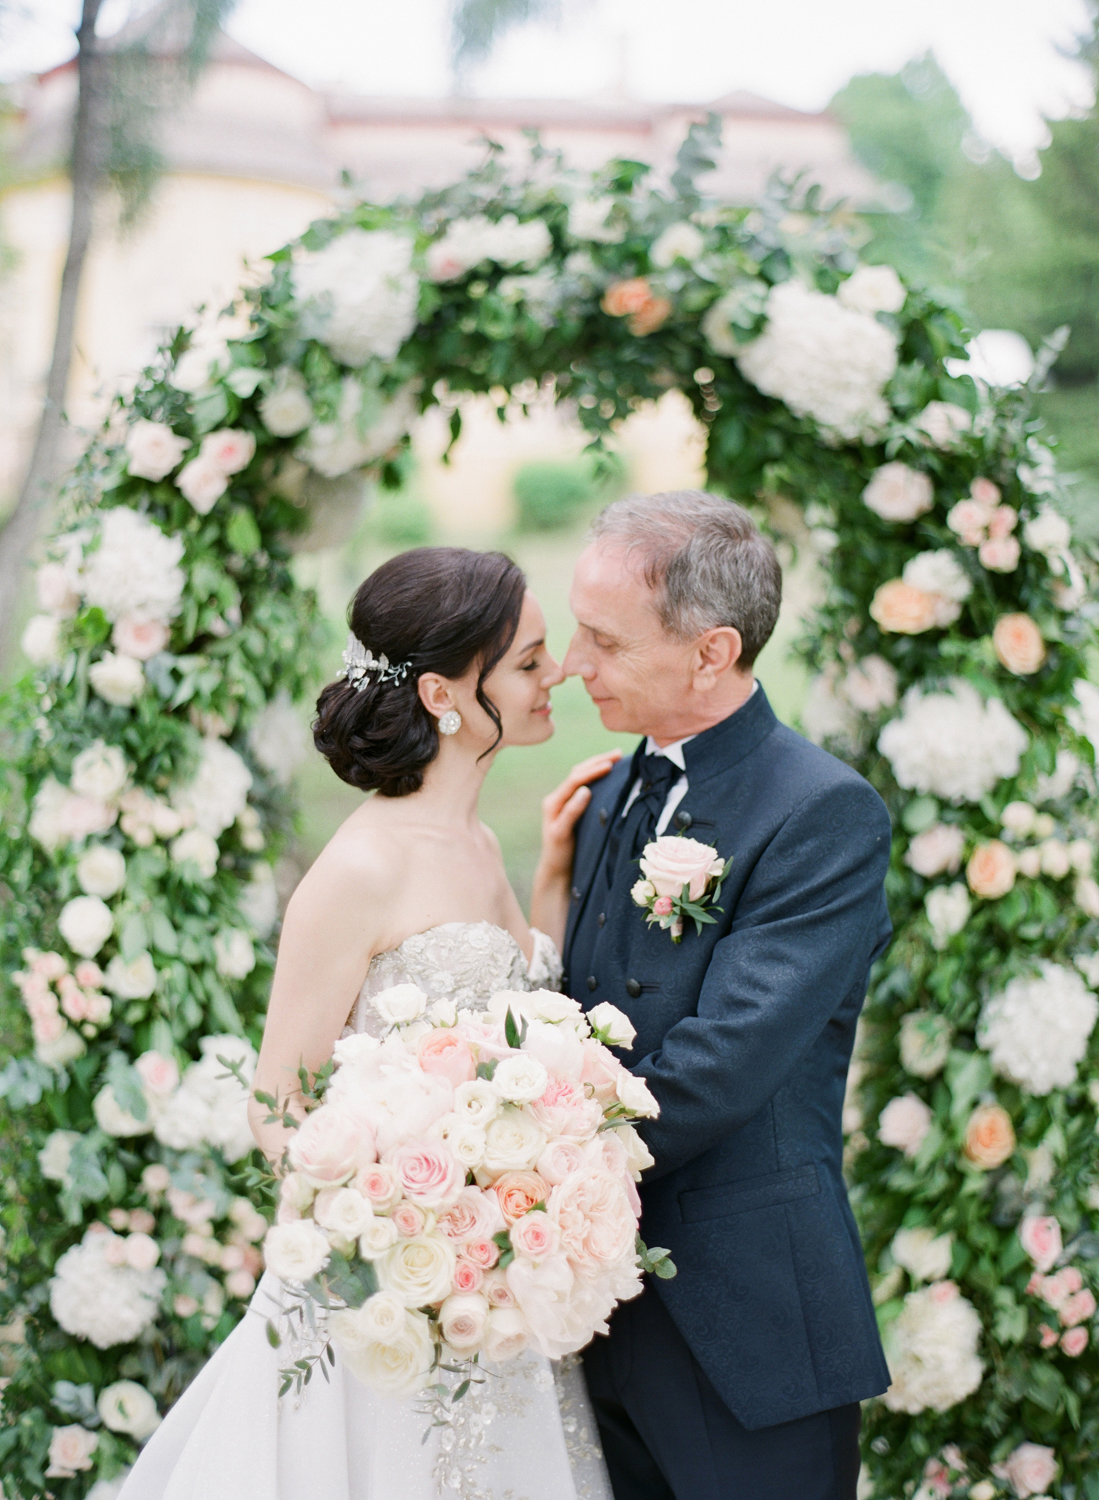 lake_como_wedding_photographer_tuscany_wedding_photographer_nikol_bodnarova_03.JPG